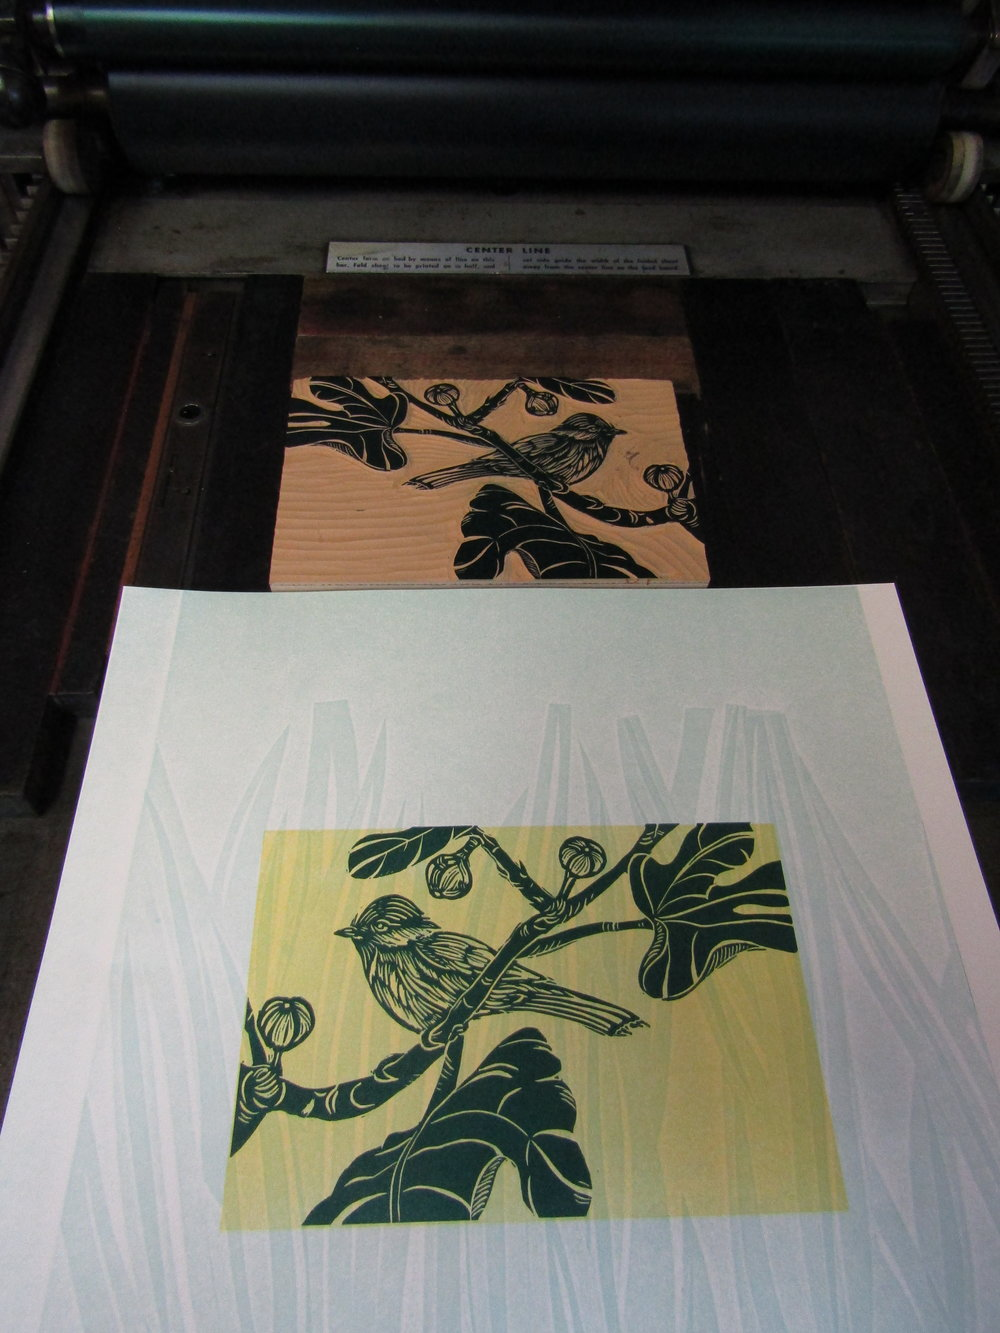 After proofing; I began printing each one on my Vandercook. Each print had three runs; one pressure print of leaves in a pale green, then a yellow mat. The third run was of the relief print, which I printed in a dark green color.